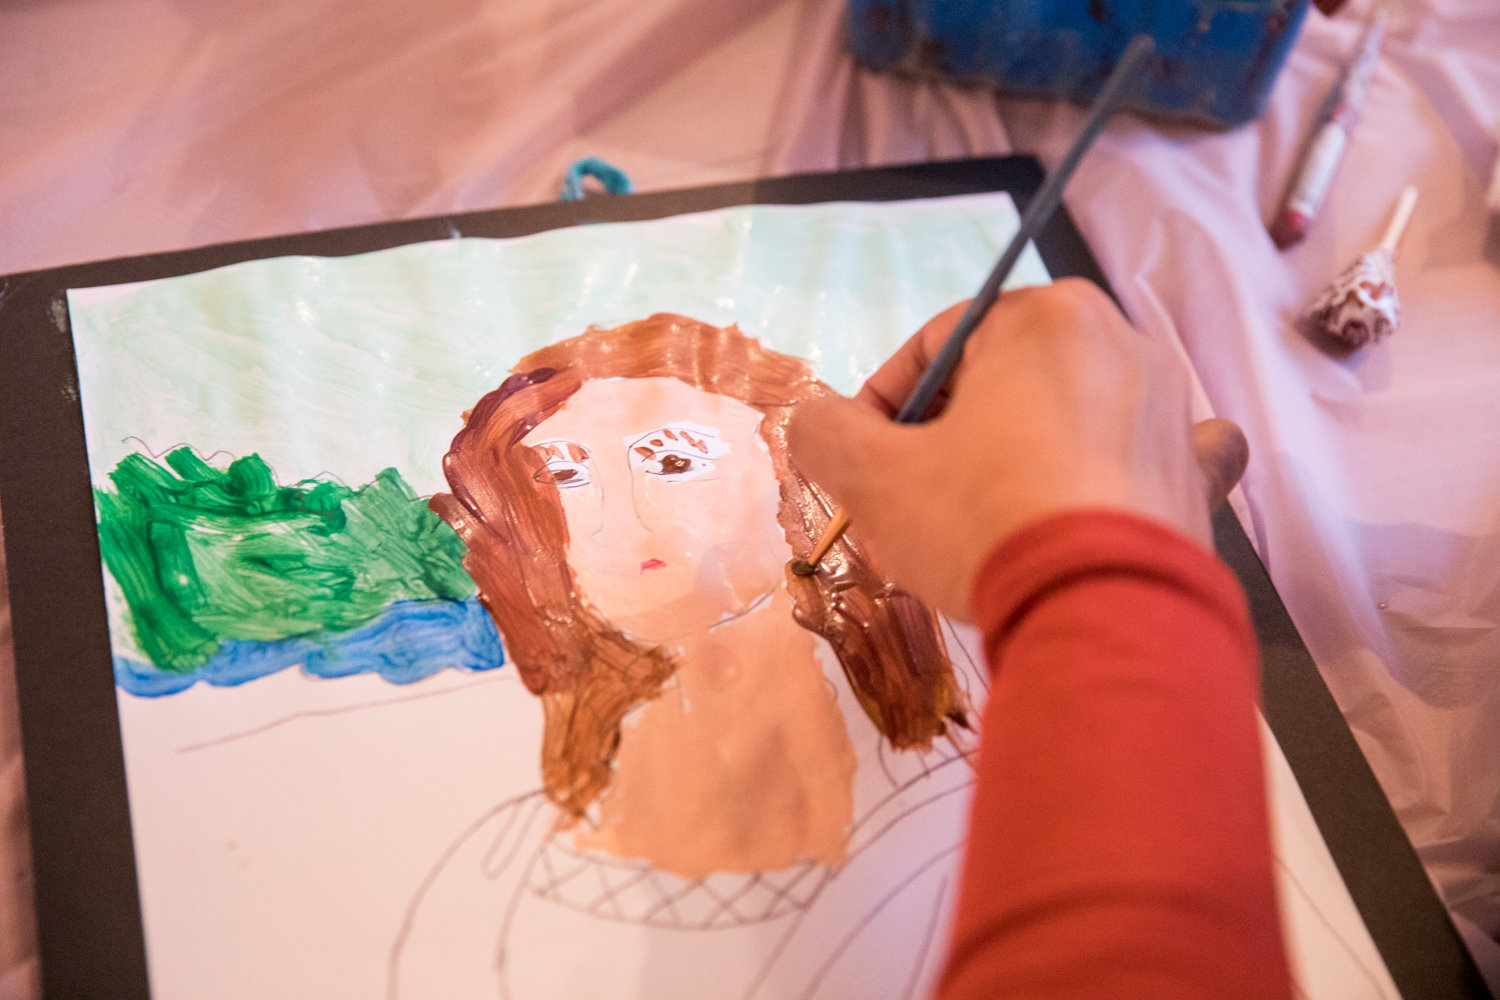 One of the goals during a recent painting workshop at Yo-Burger on Riverdale Avenue was to re-create the Mona Lisa. Children had a drawing of the painting to work from, which was provided by artist Cathy Sanacore.